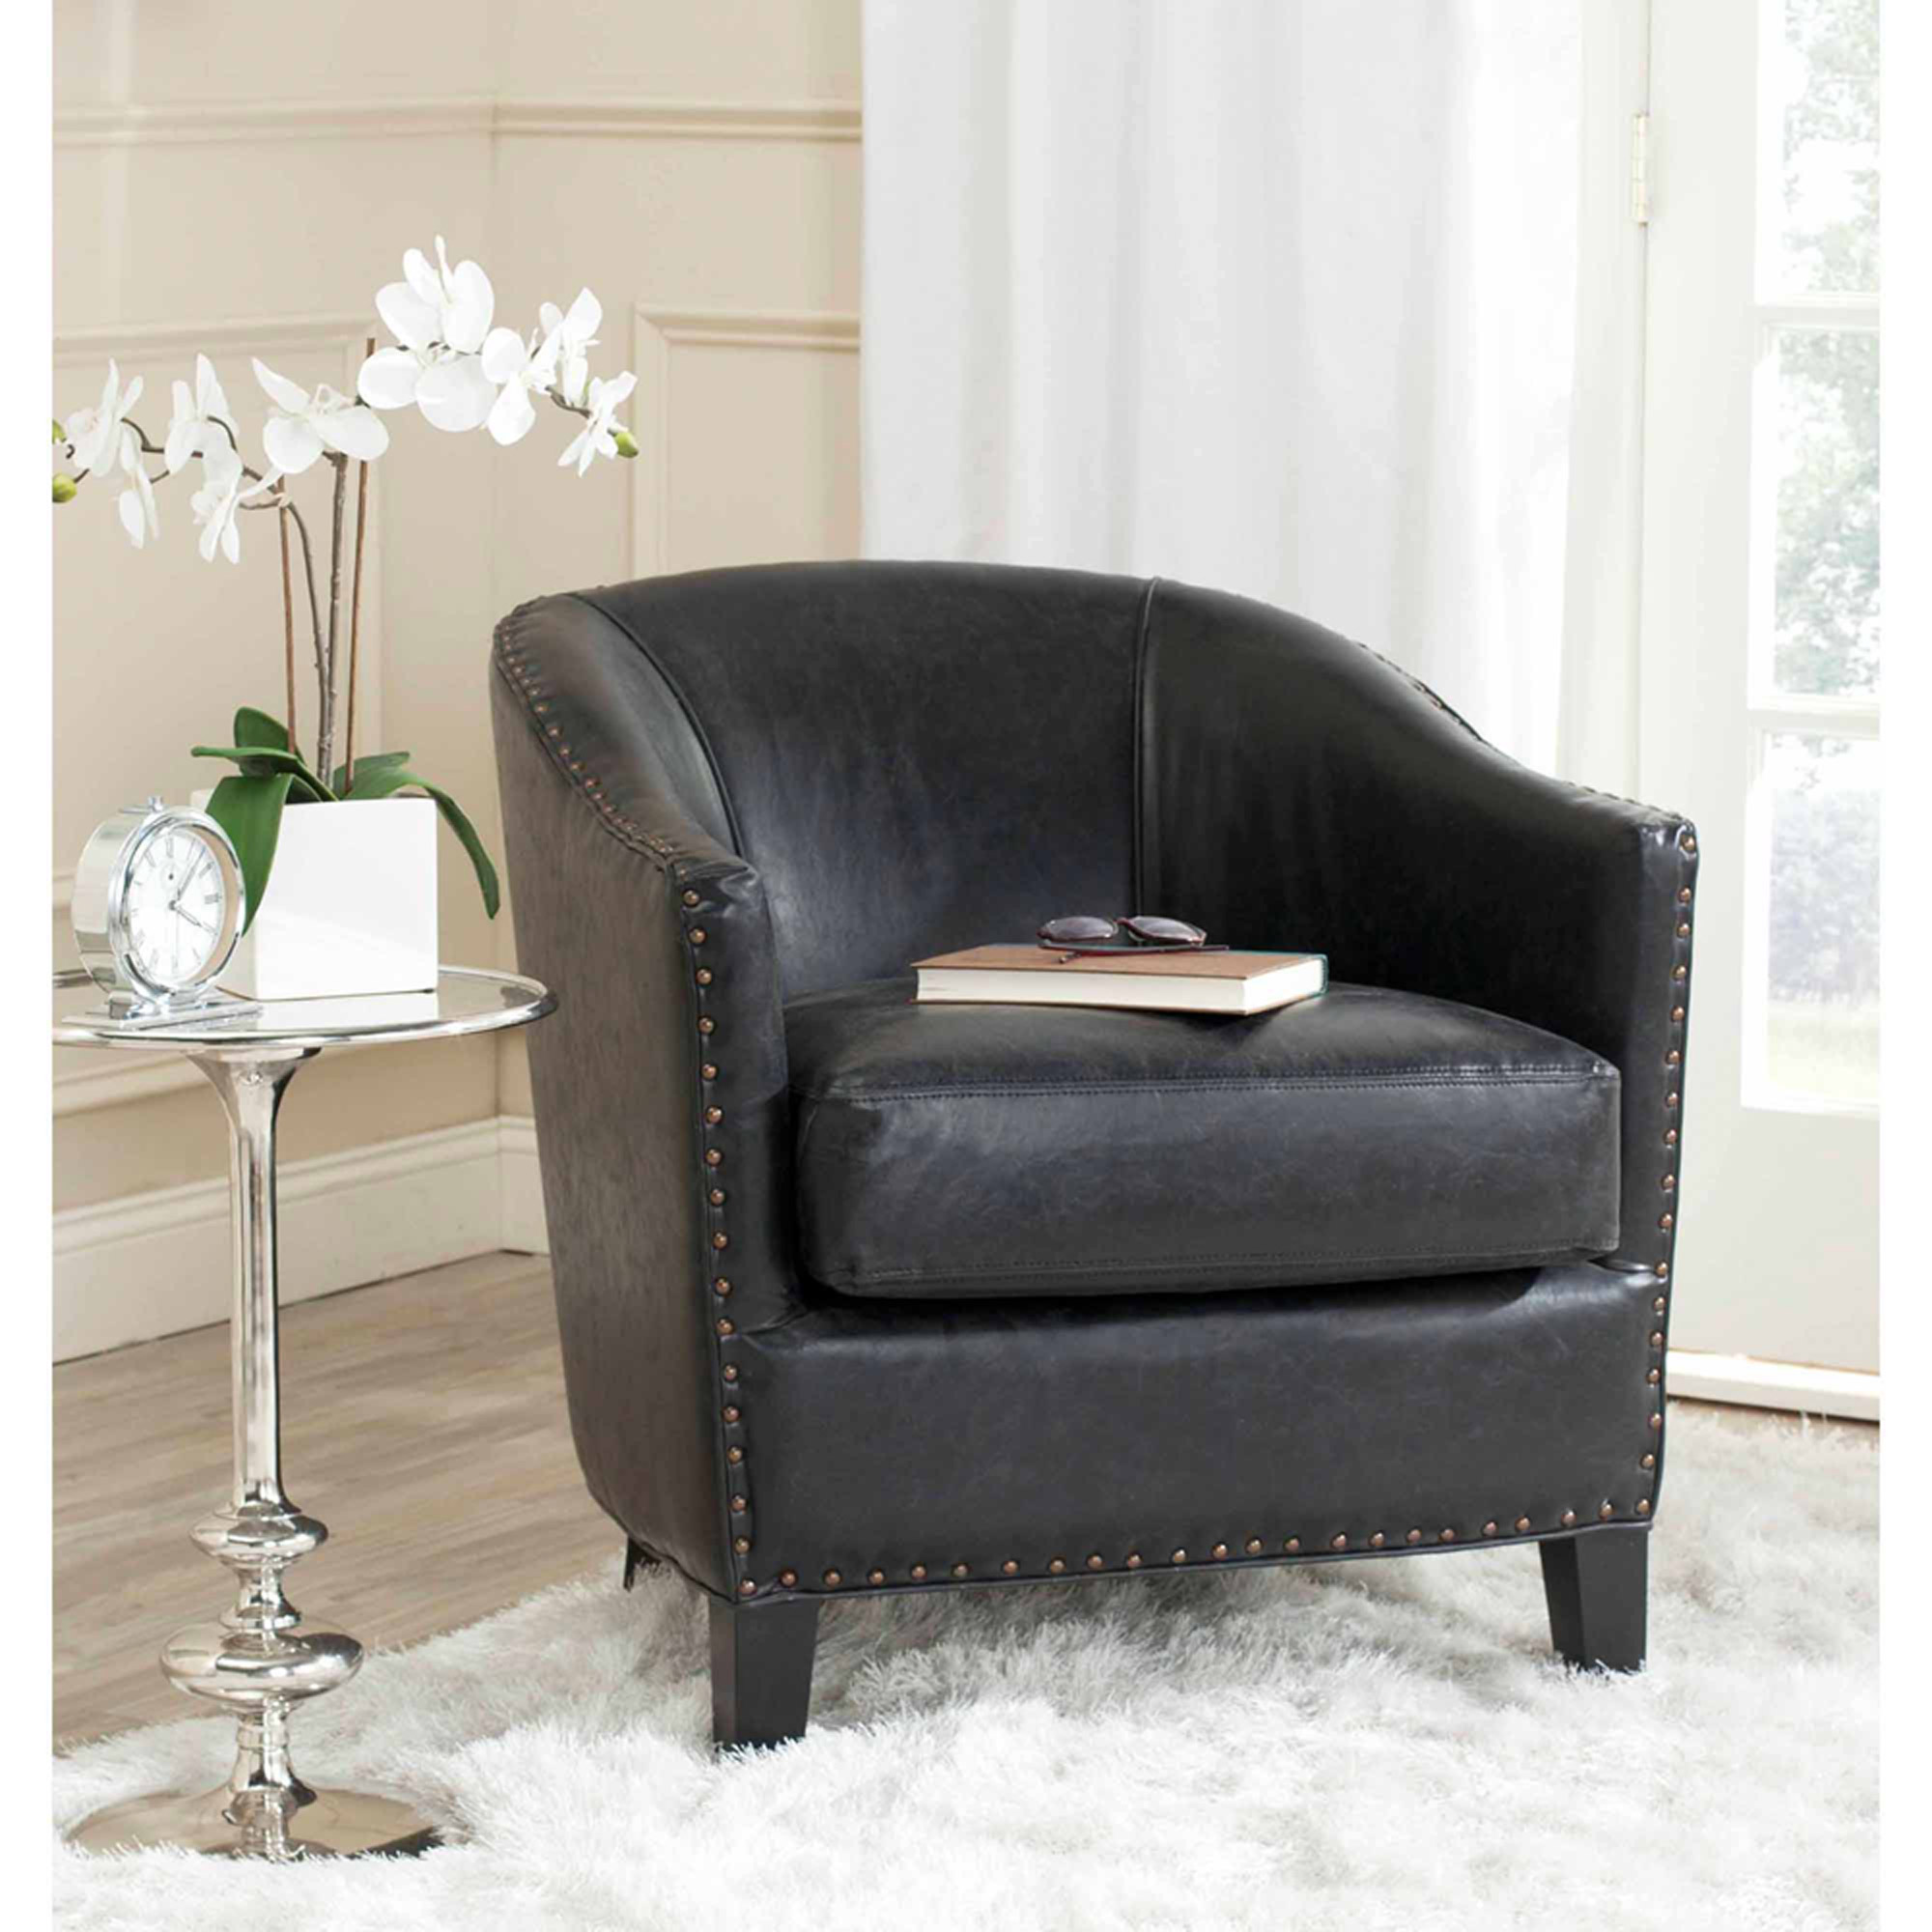 Safavieh Evander Bicast Leather Club Chair, Antique Black with Brass Nail Heads